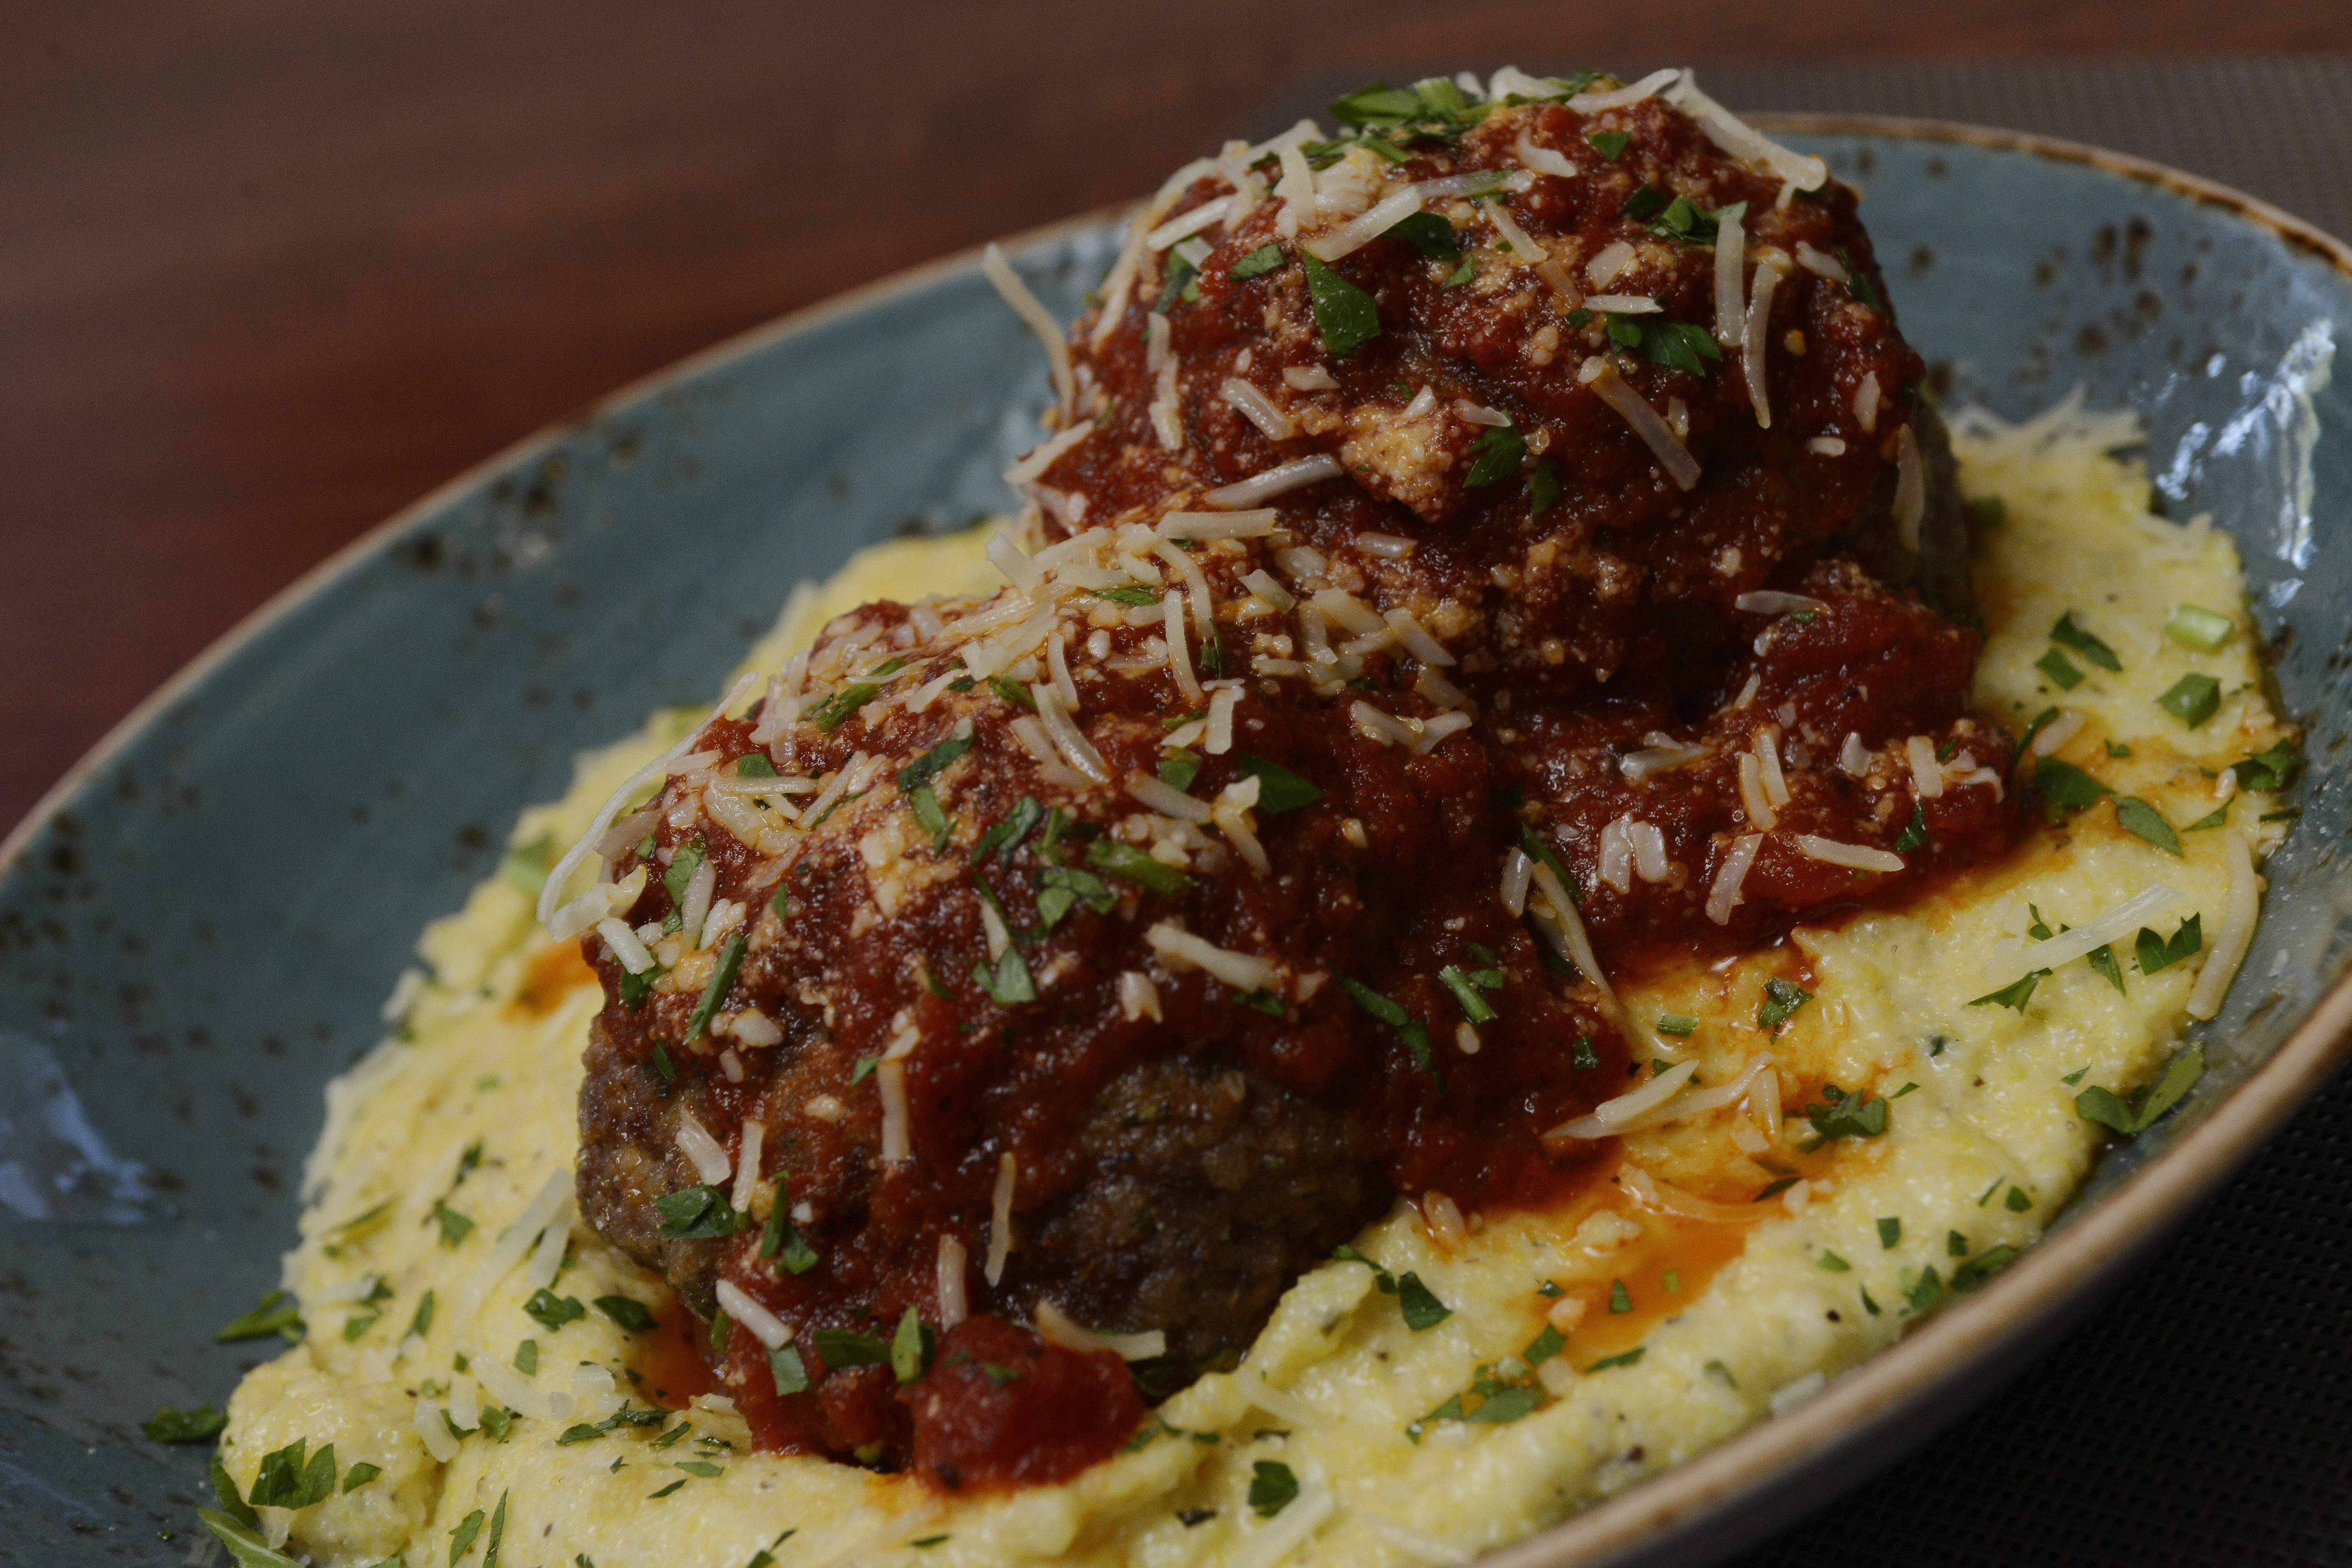 Zeal's meat-stuffed meatballs are not for the weak-hearted.